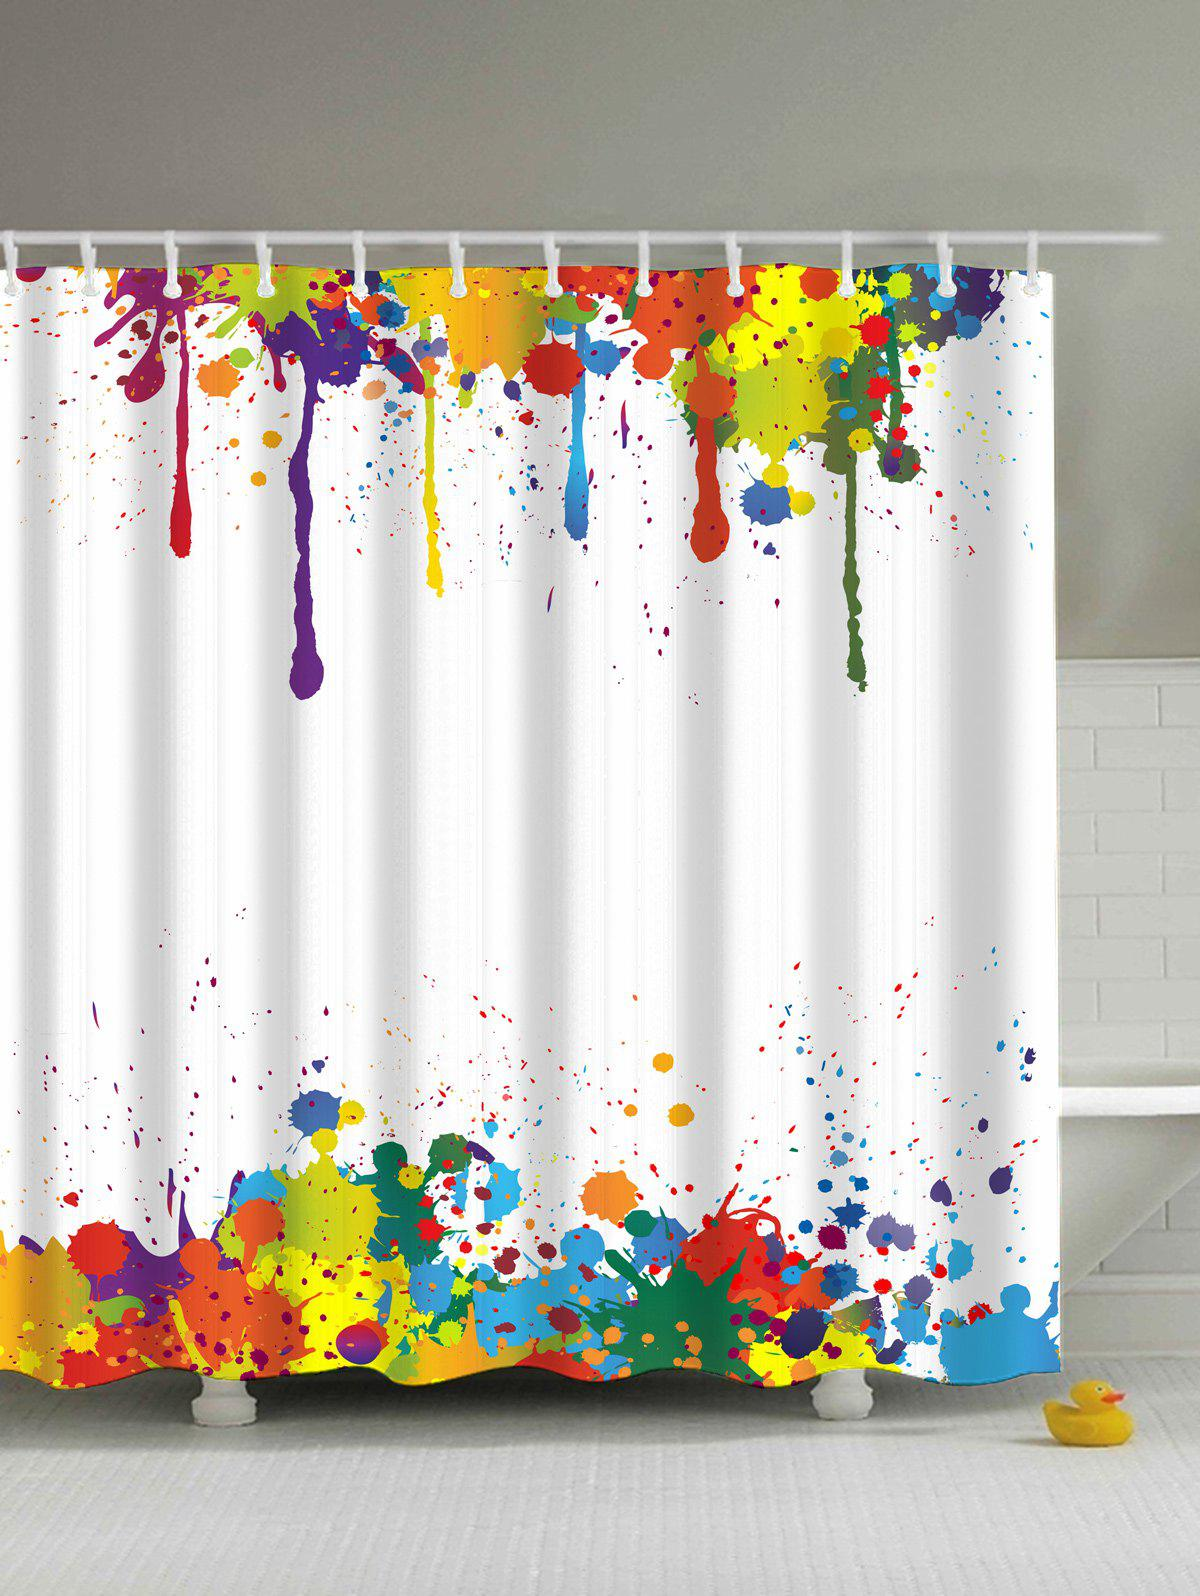 Colorful Paint Splatter Waterproof Bathroom Shower CurtainHOME<br><br>Color: COLORMIX; Type: Shower Curtains; Material: Polyester; Size(L*W)(CM): 180*180; Weight: 0.540kg; Package Contents: 1 x Shower Curtain;